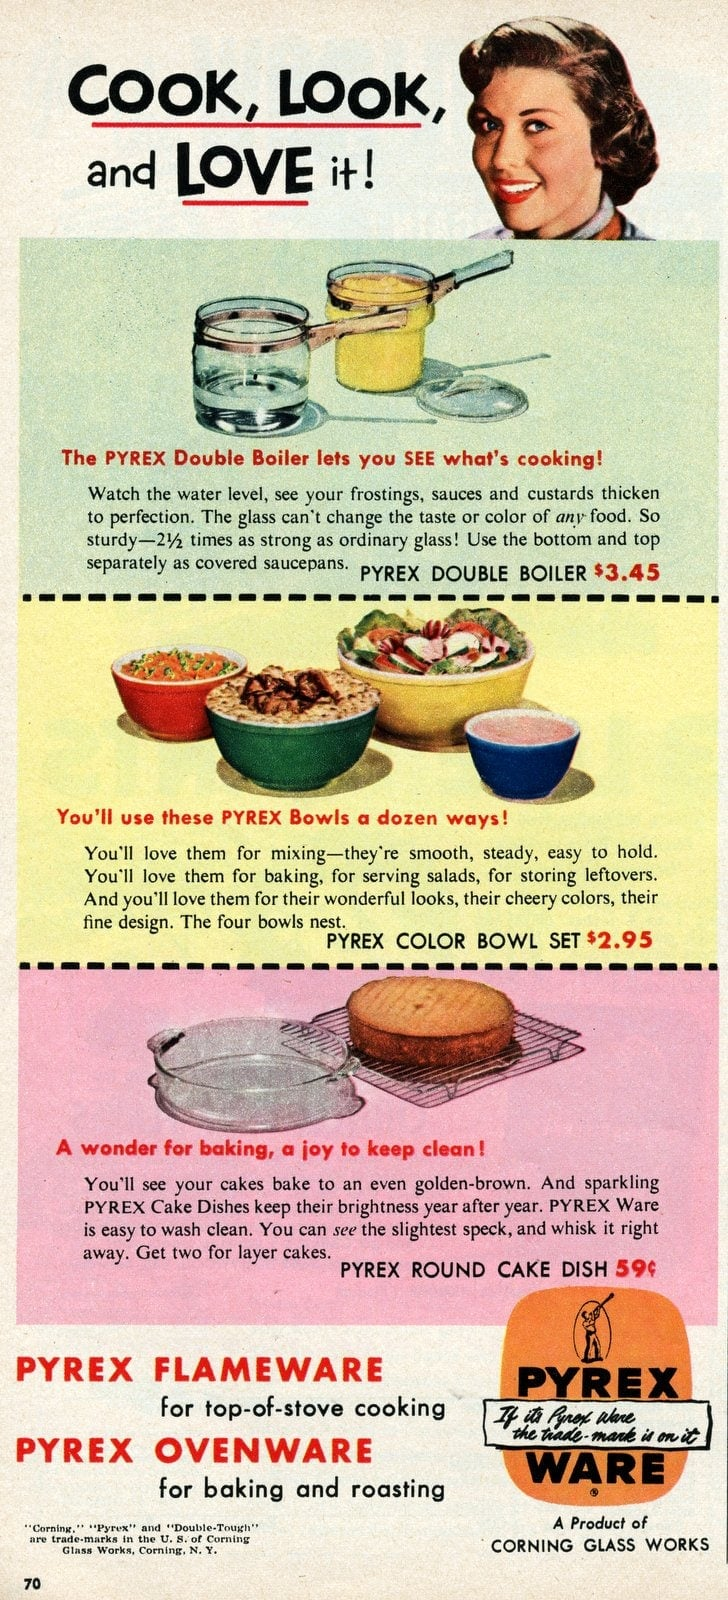 Vintage Pyrex ad - Cook look and love it - 1950 (1)